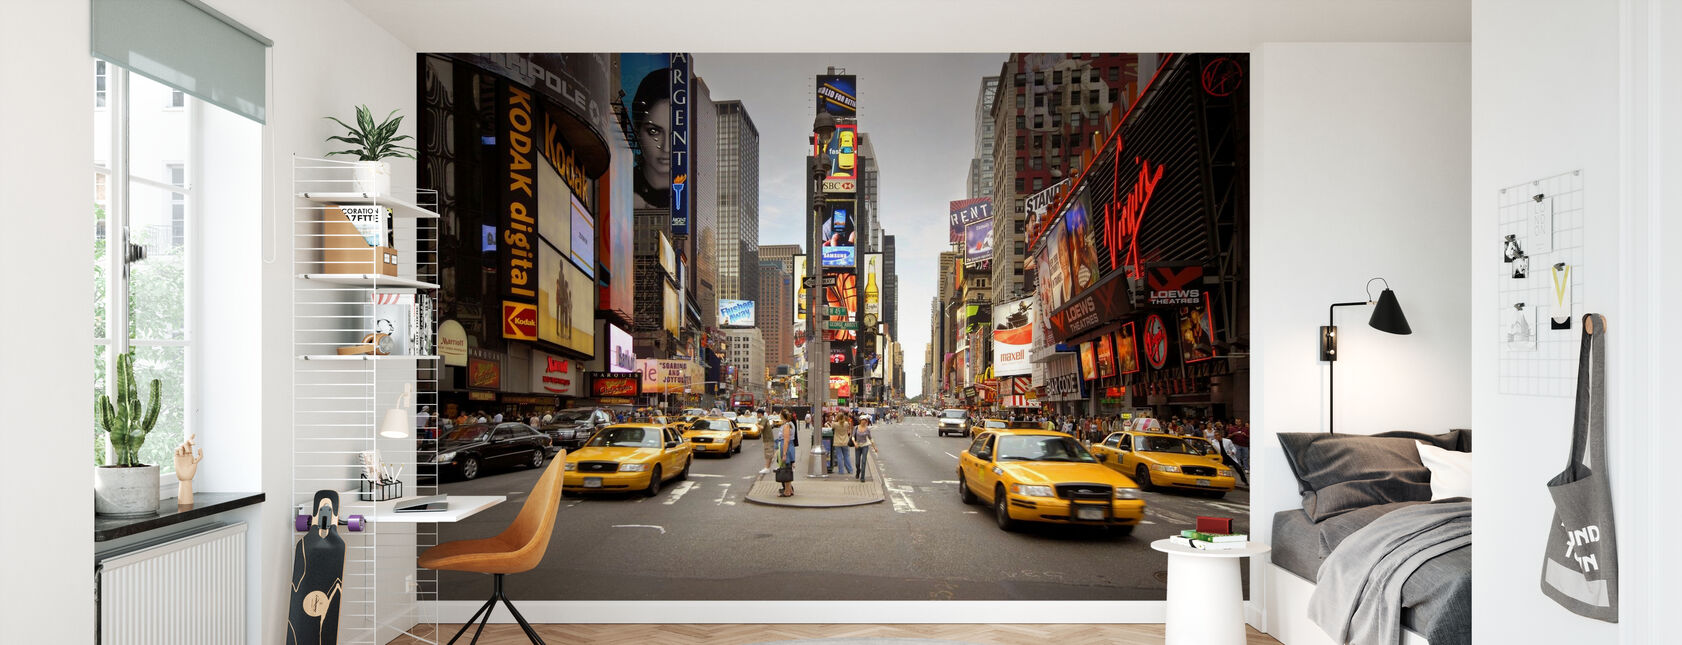 Times Square, New York, USA - Wallpaper - Kids Room